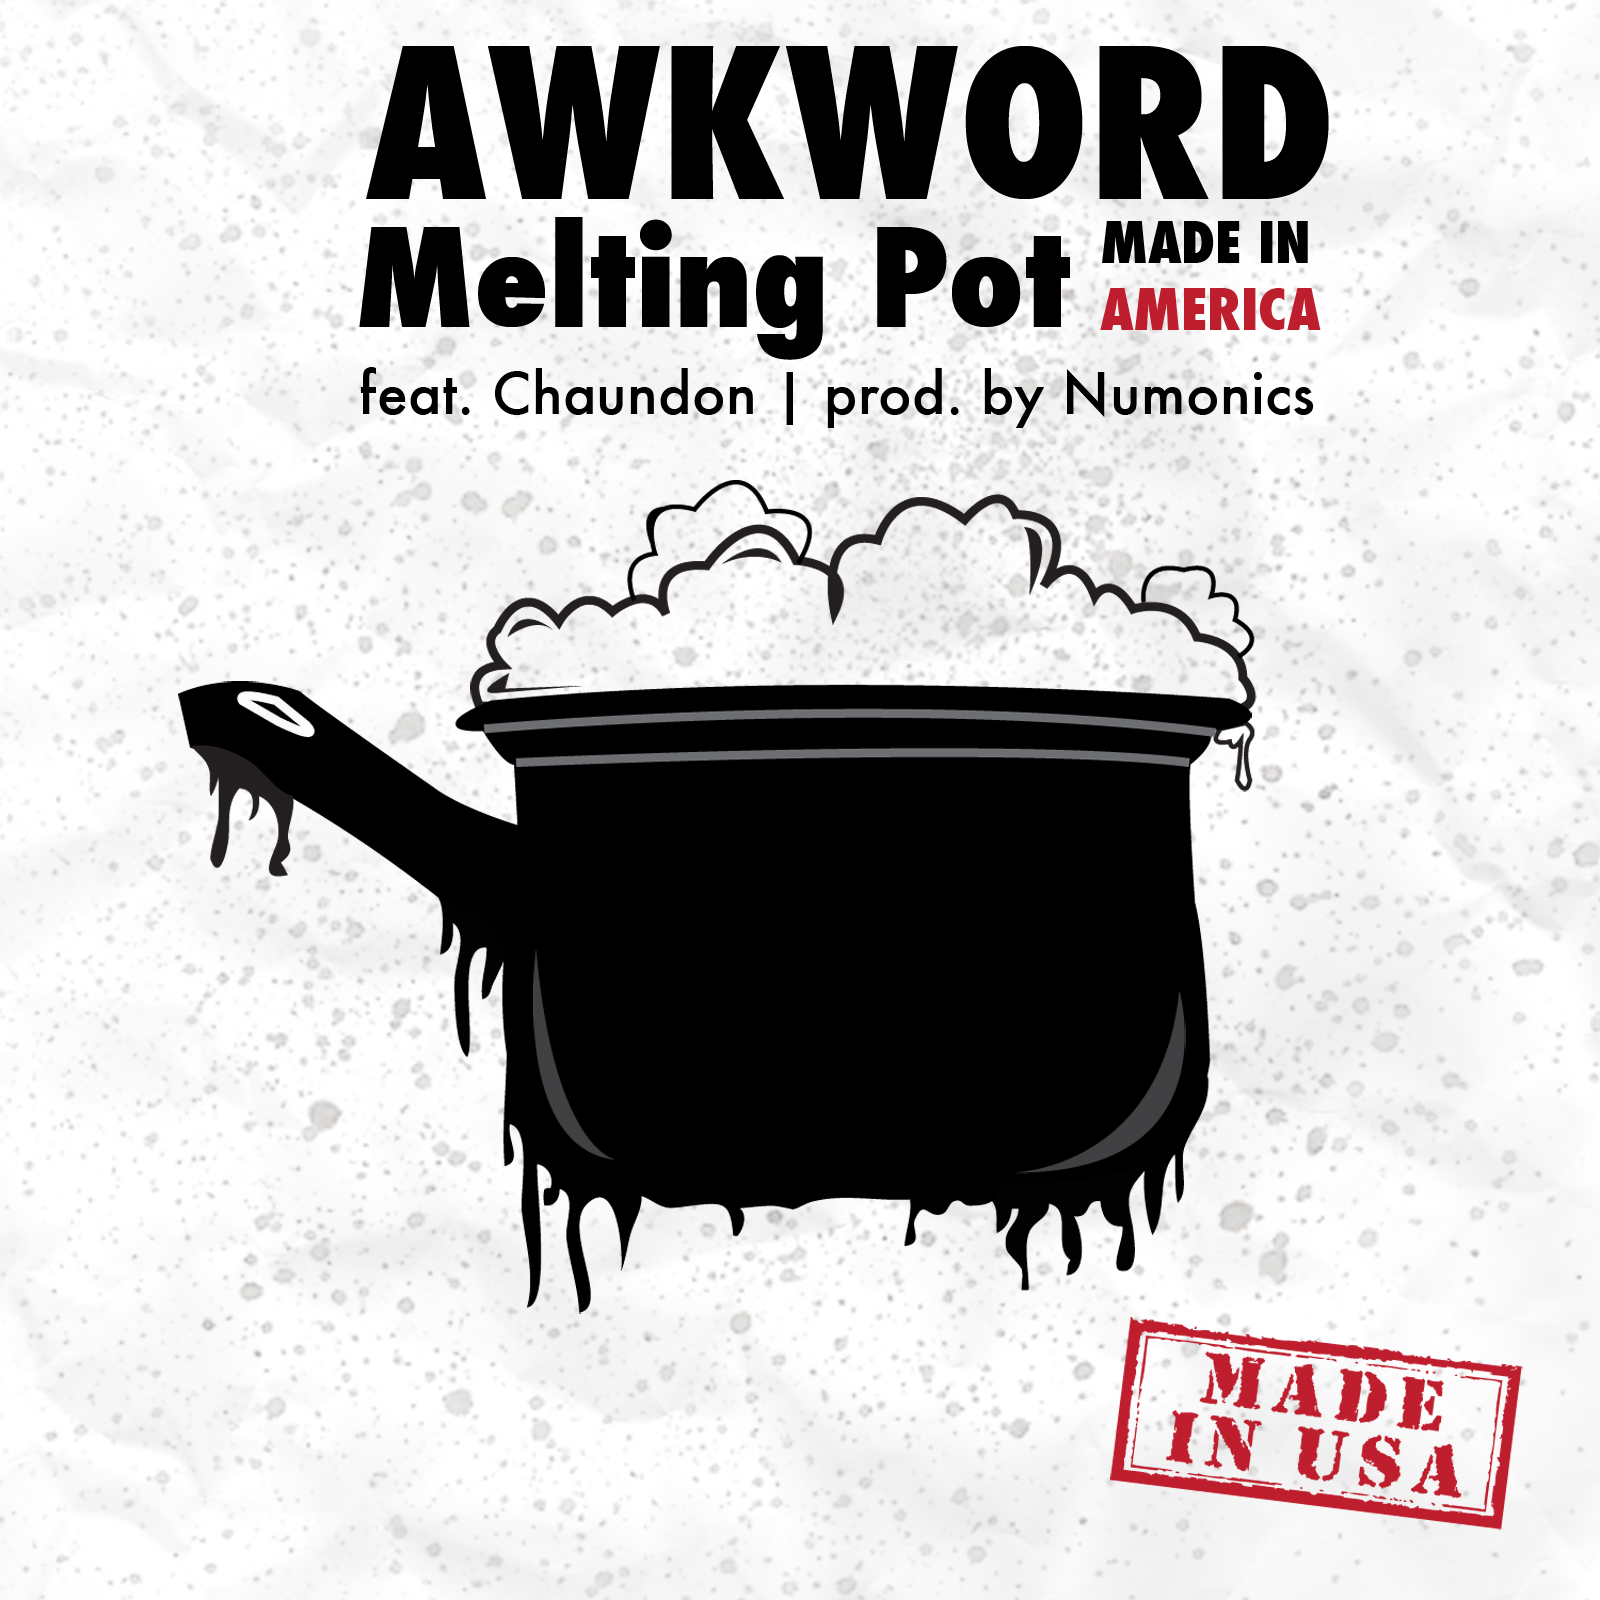 single you out awkword melting pot made in america ft chaundon prod by numonics